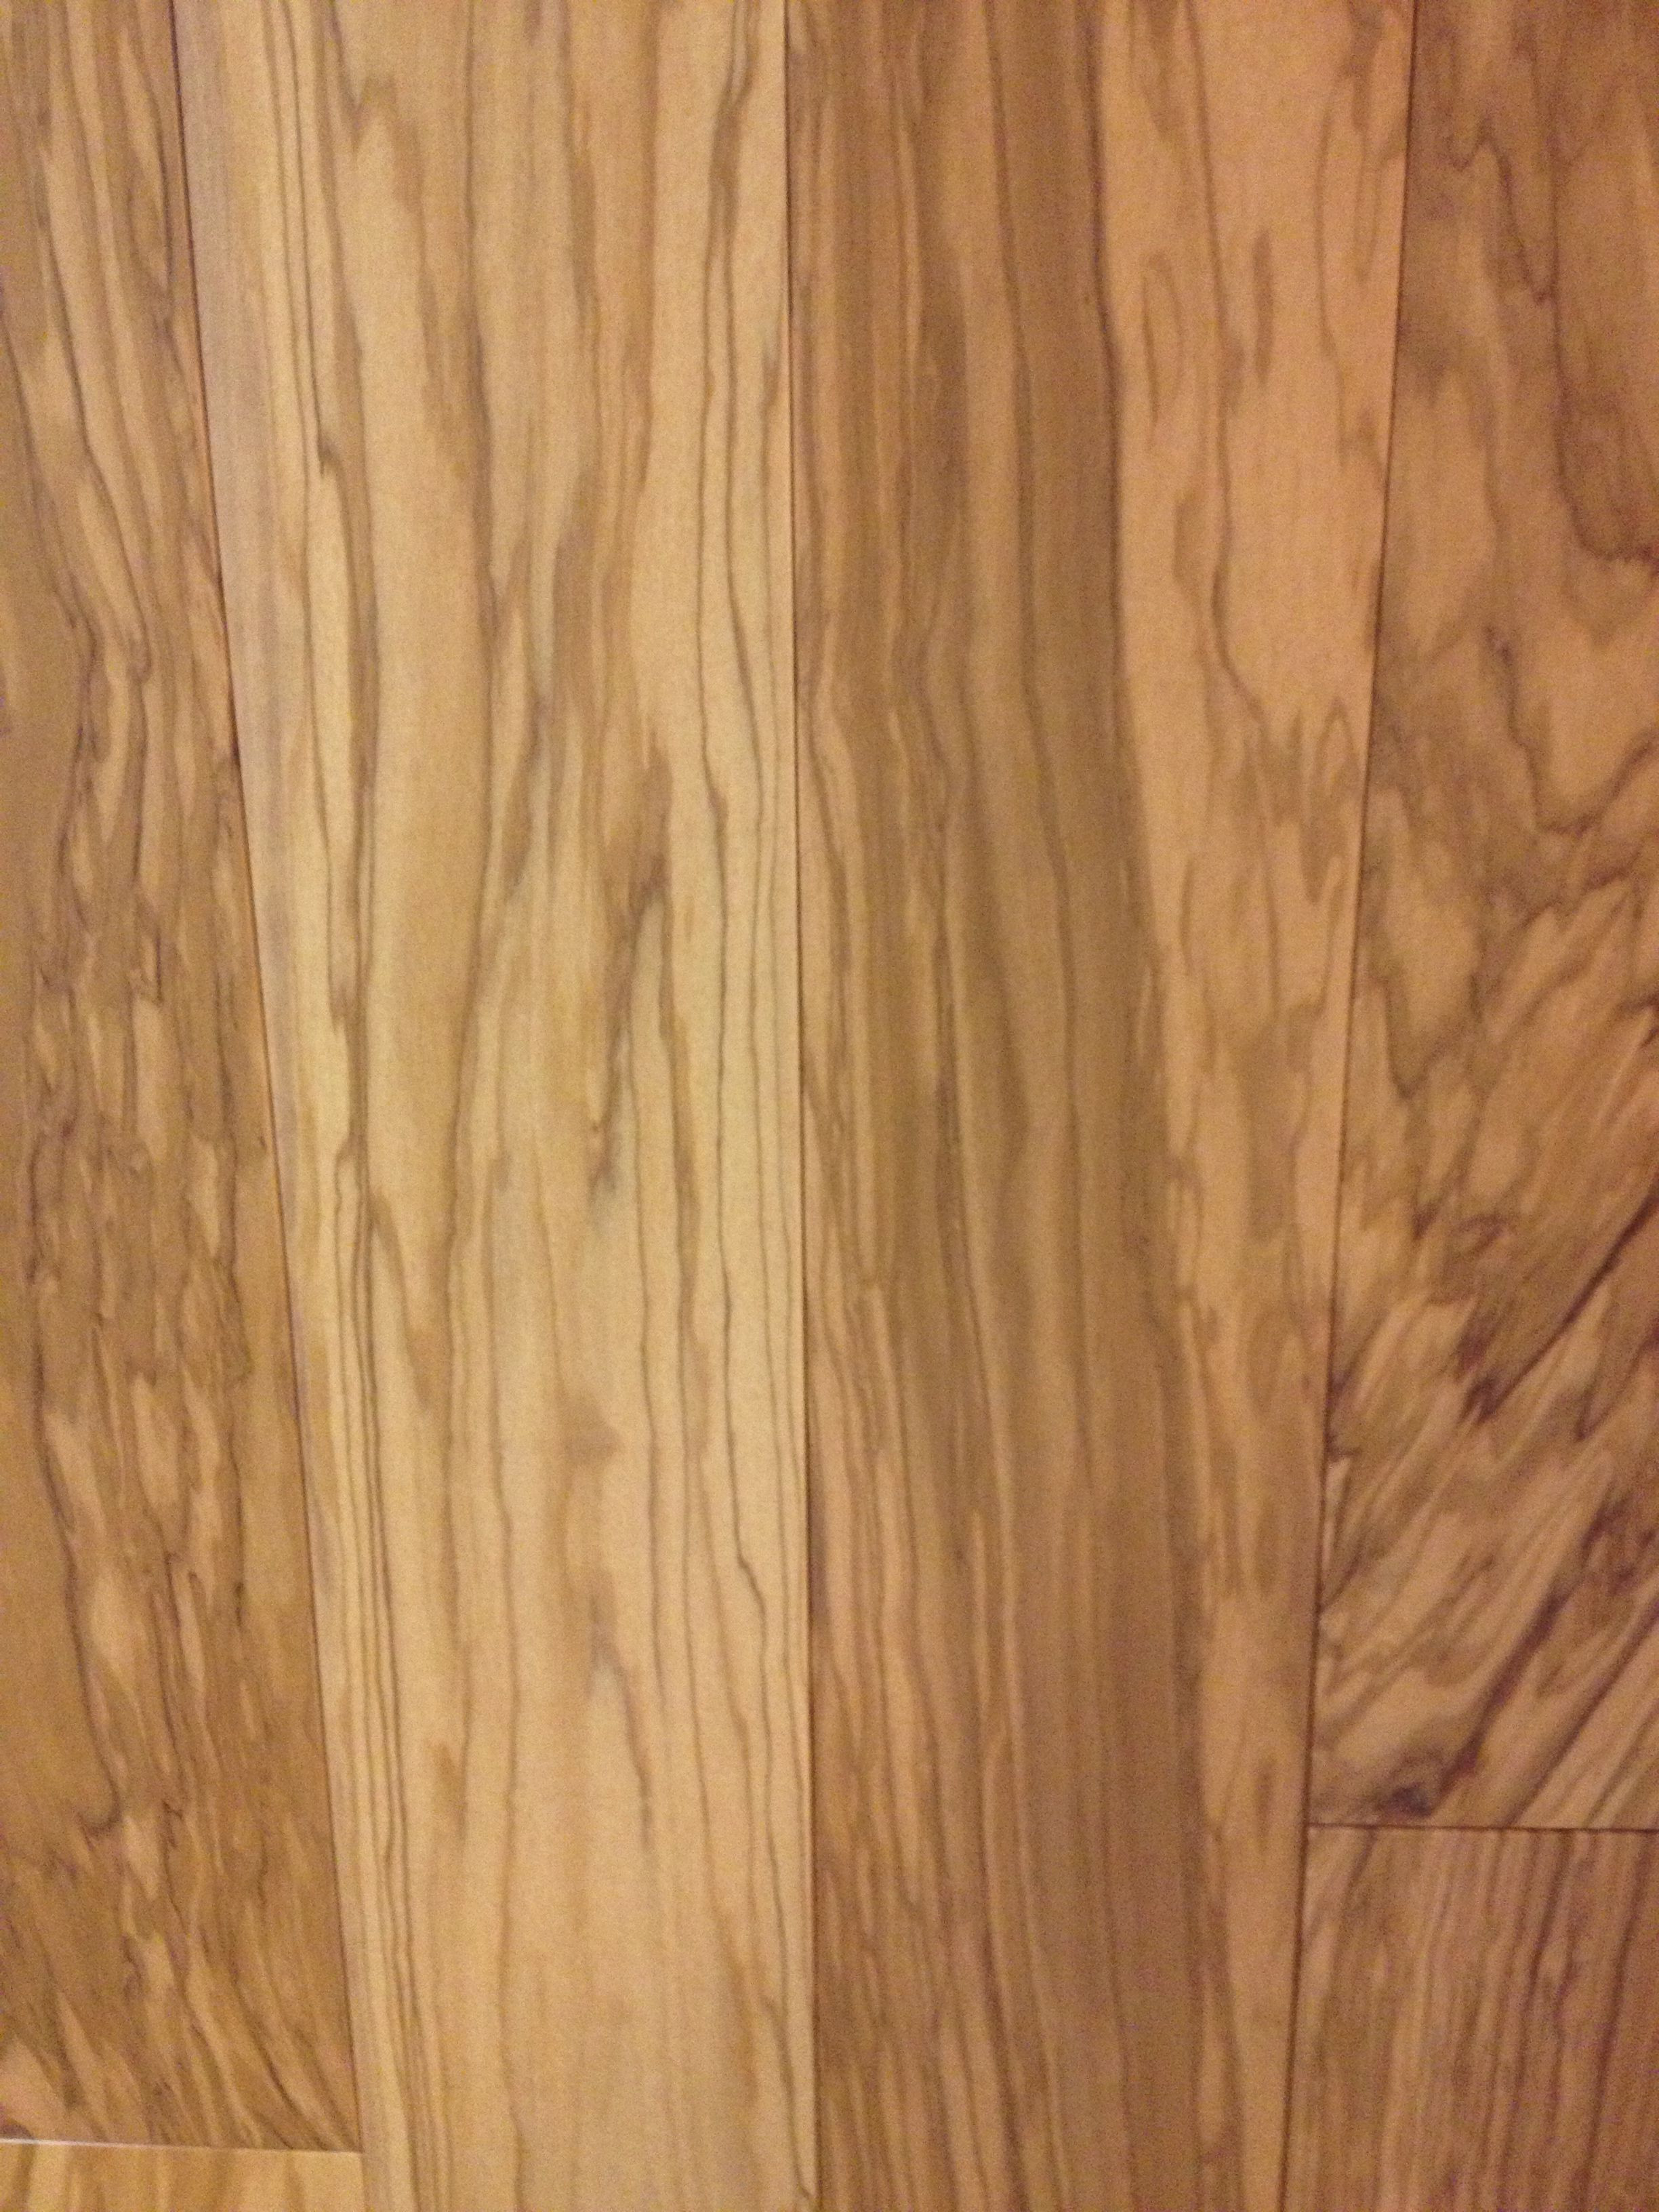 prefinished oak hardwood flooring prices of tuscany olive wood floor there is nothing quite like olive wood for pertaining to tuscany olive wood floor there is nothing quite like olive wood for turning your home